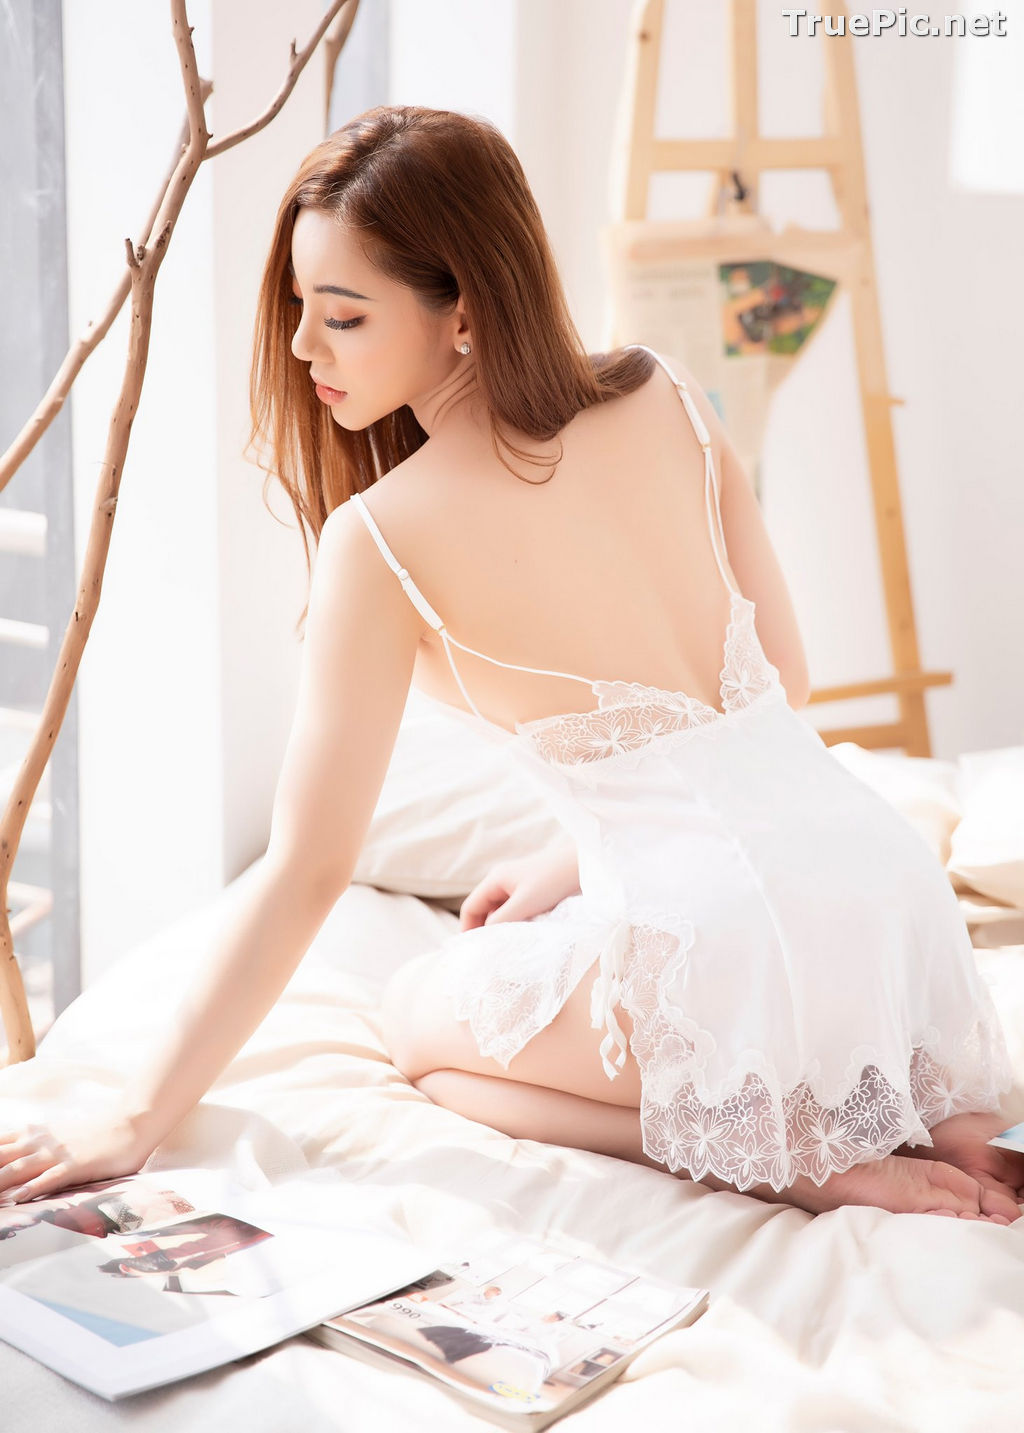 Image Vietnamese Model – Hot Beautiful Girls In White Collection #2 - TruePic.net - Picture-6